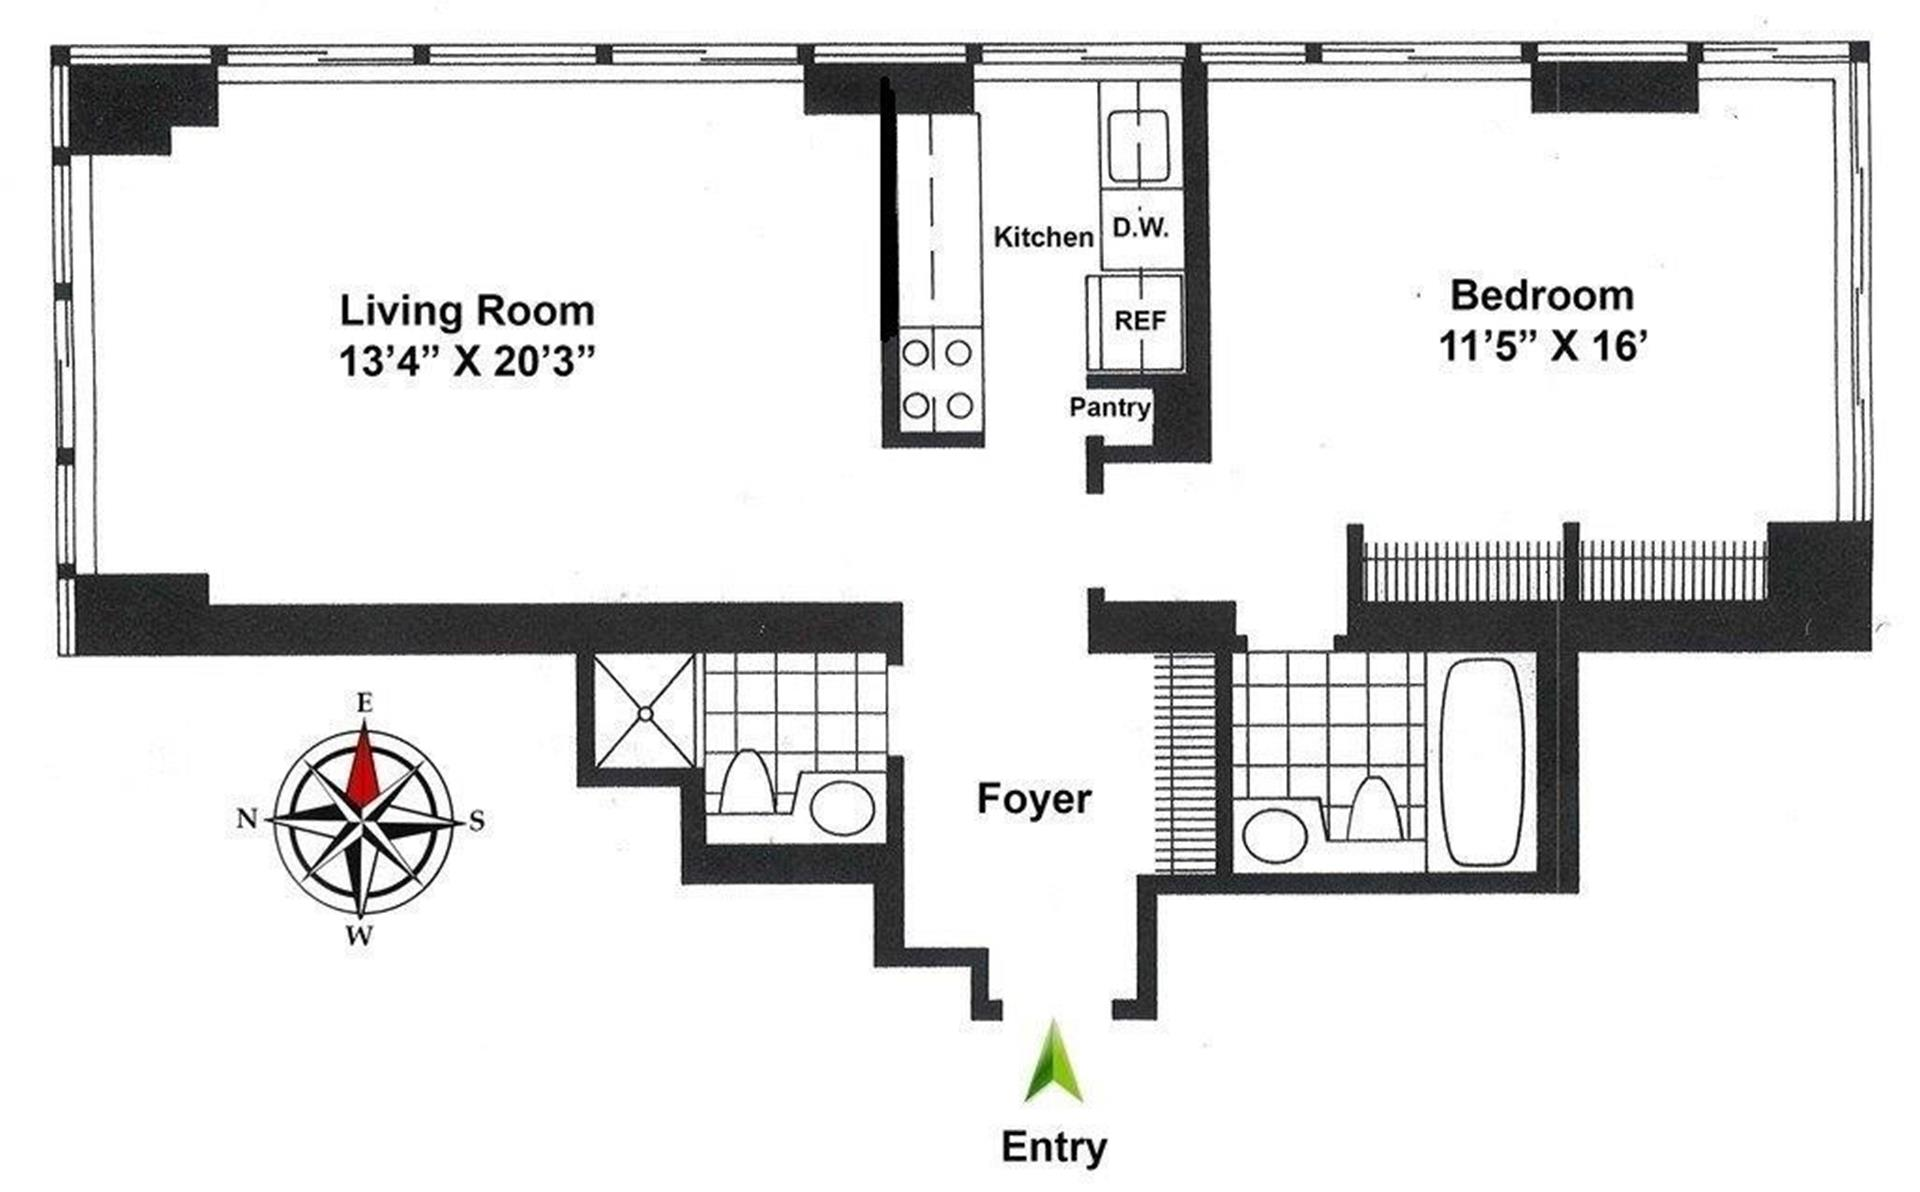 Floor plan of 300 East 93rd St, 28E - Upper East Side, New York